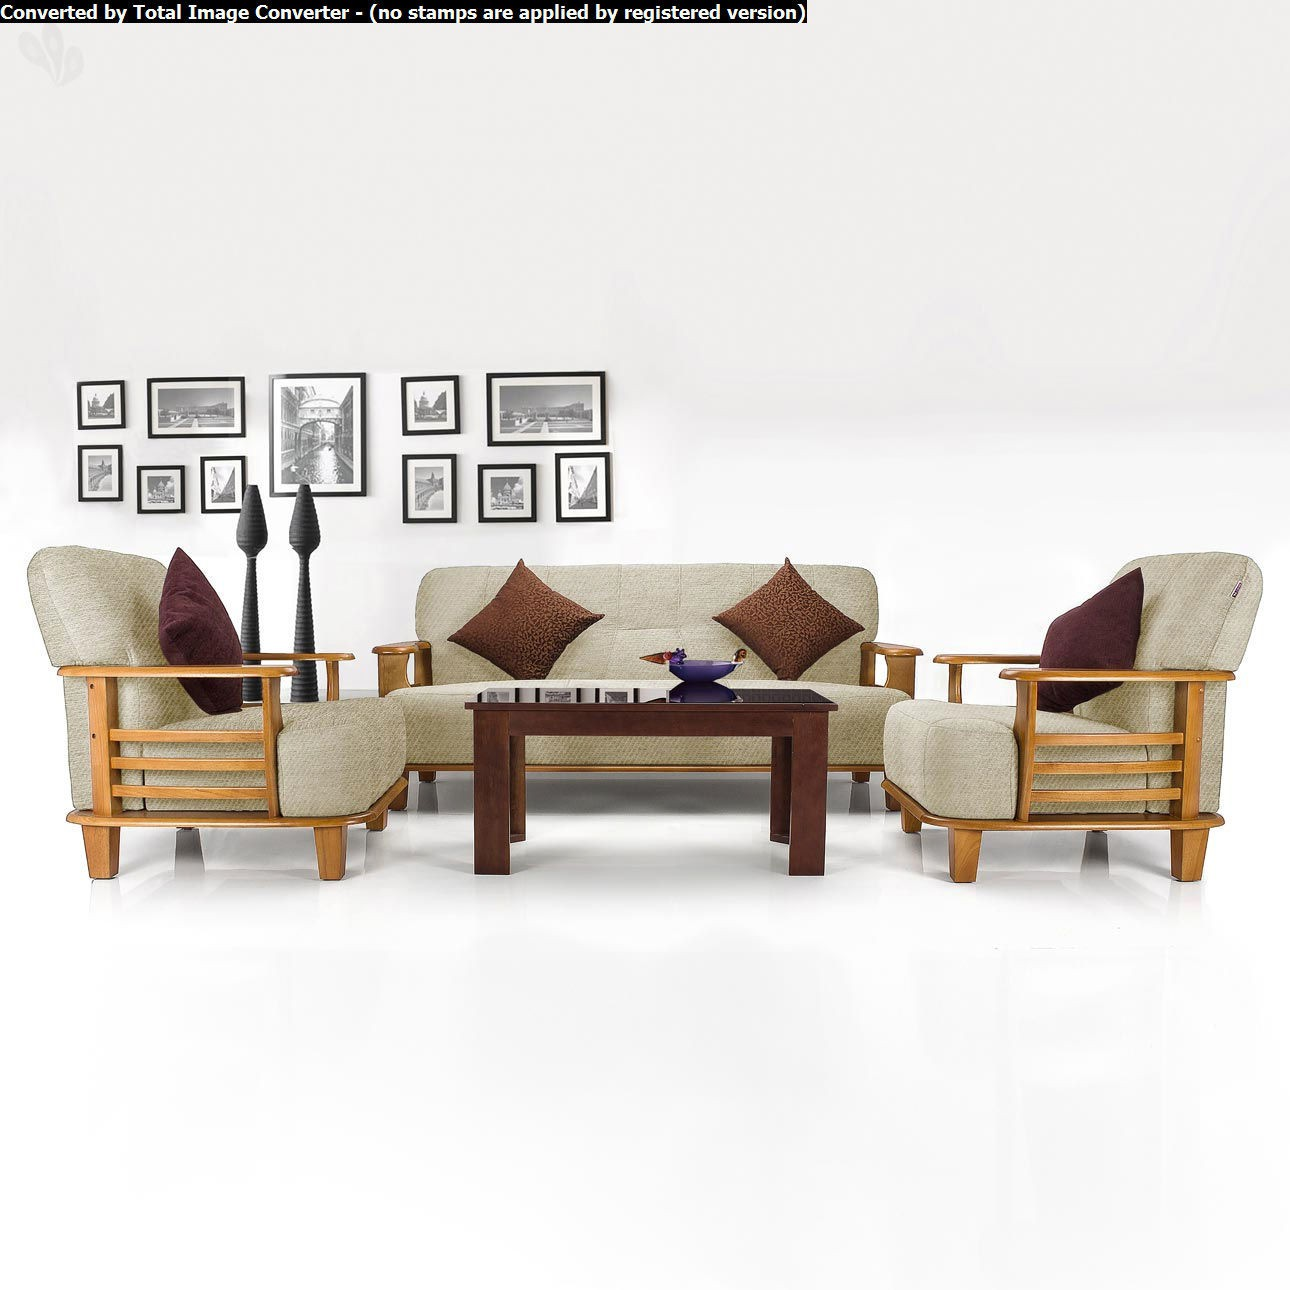 Swell Vive Phoenix Solid Wood 3 1 1 Sofa Set Configuration Gamerscity Chair Design For Home Gamerscityorg